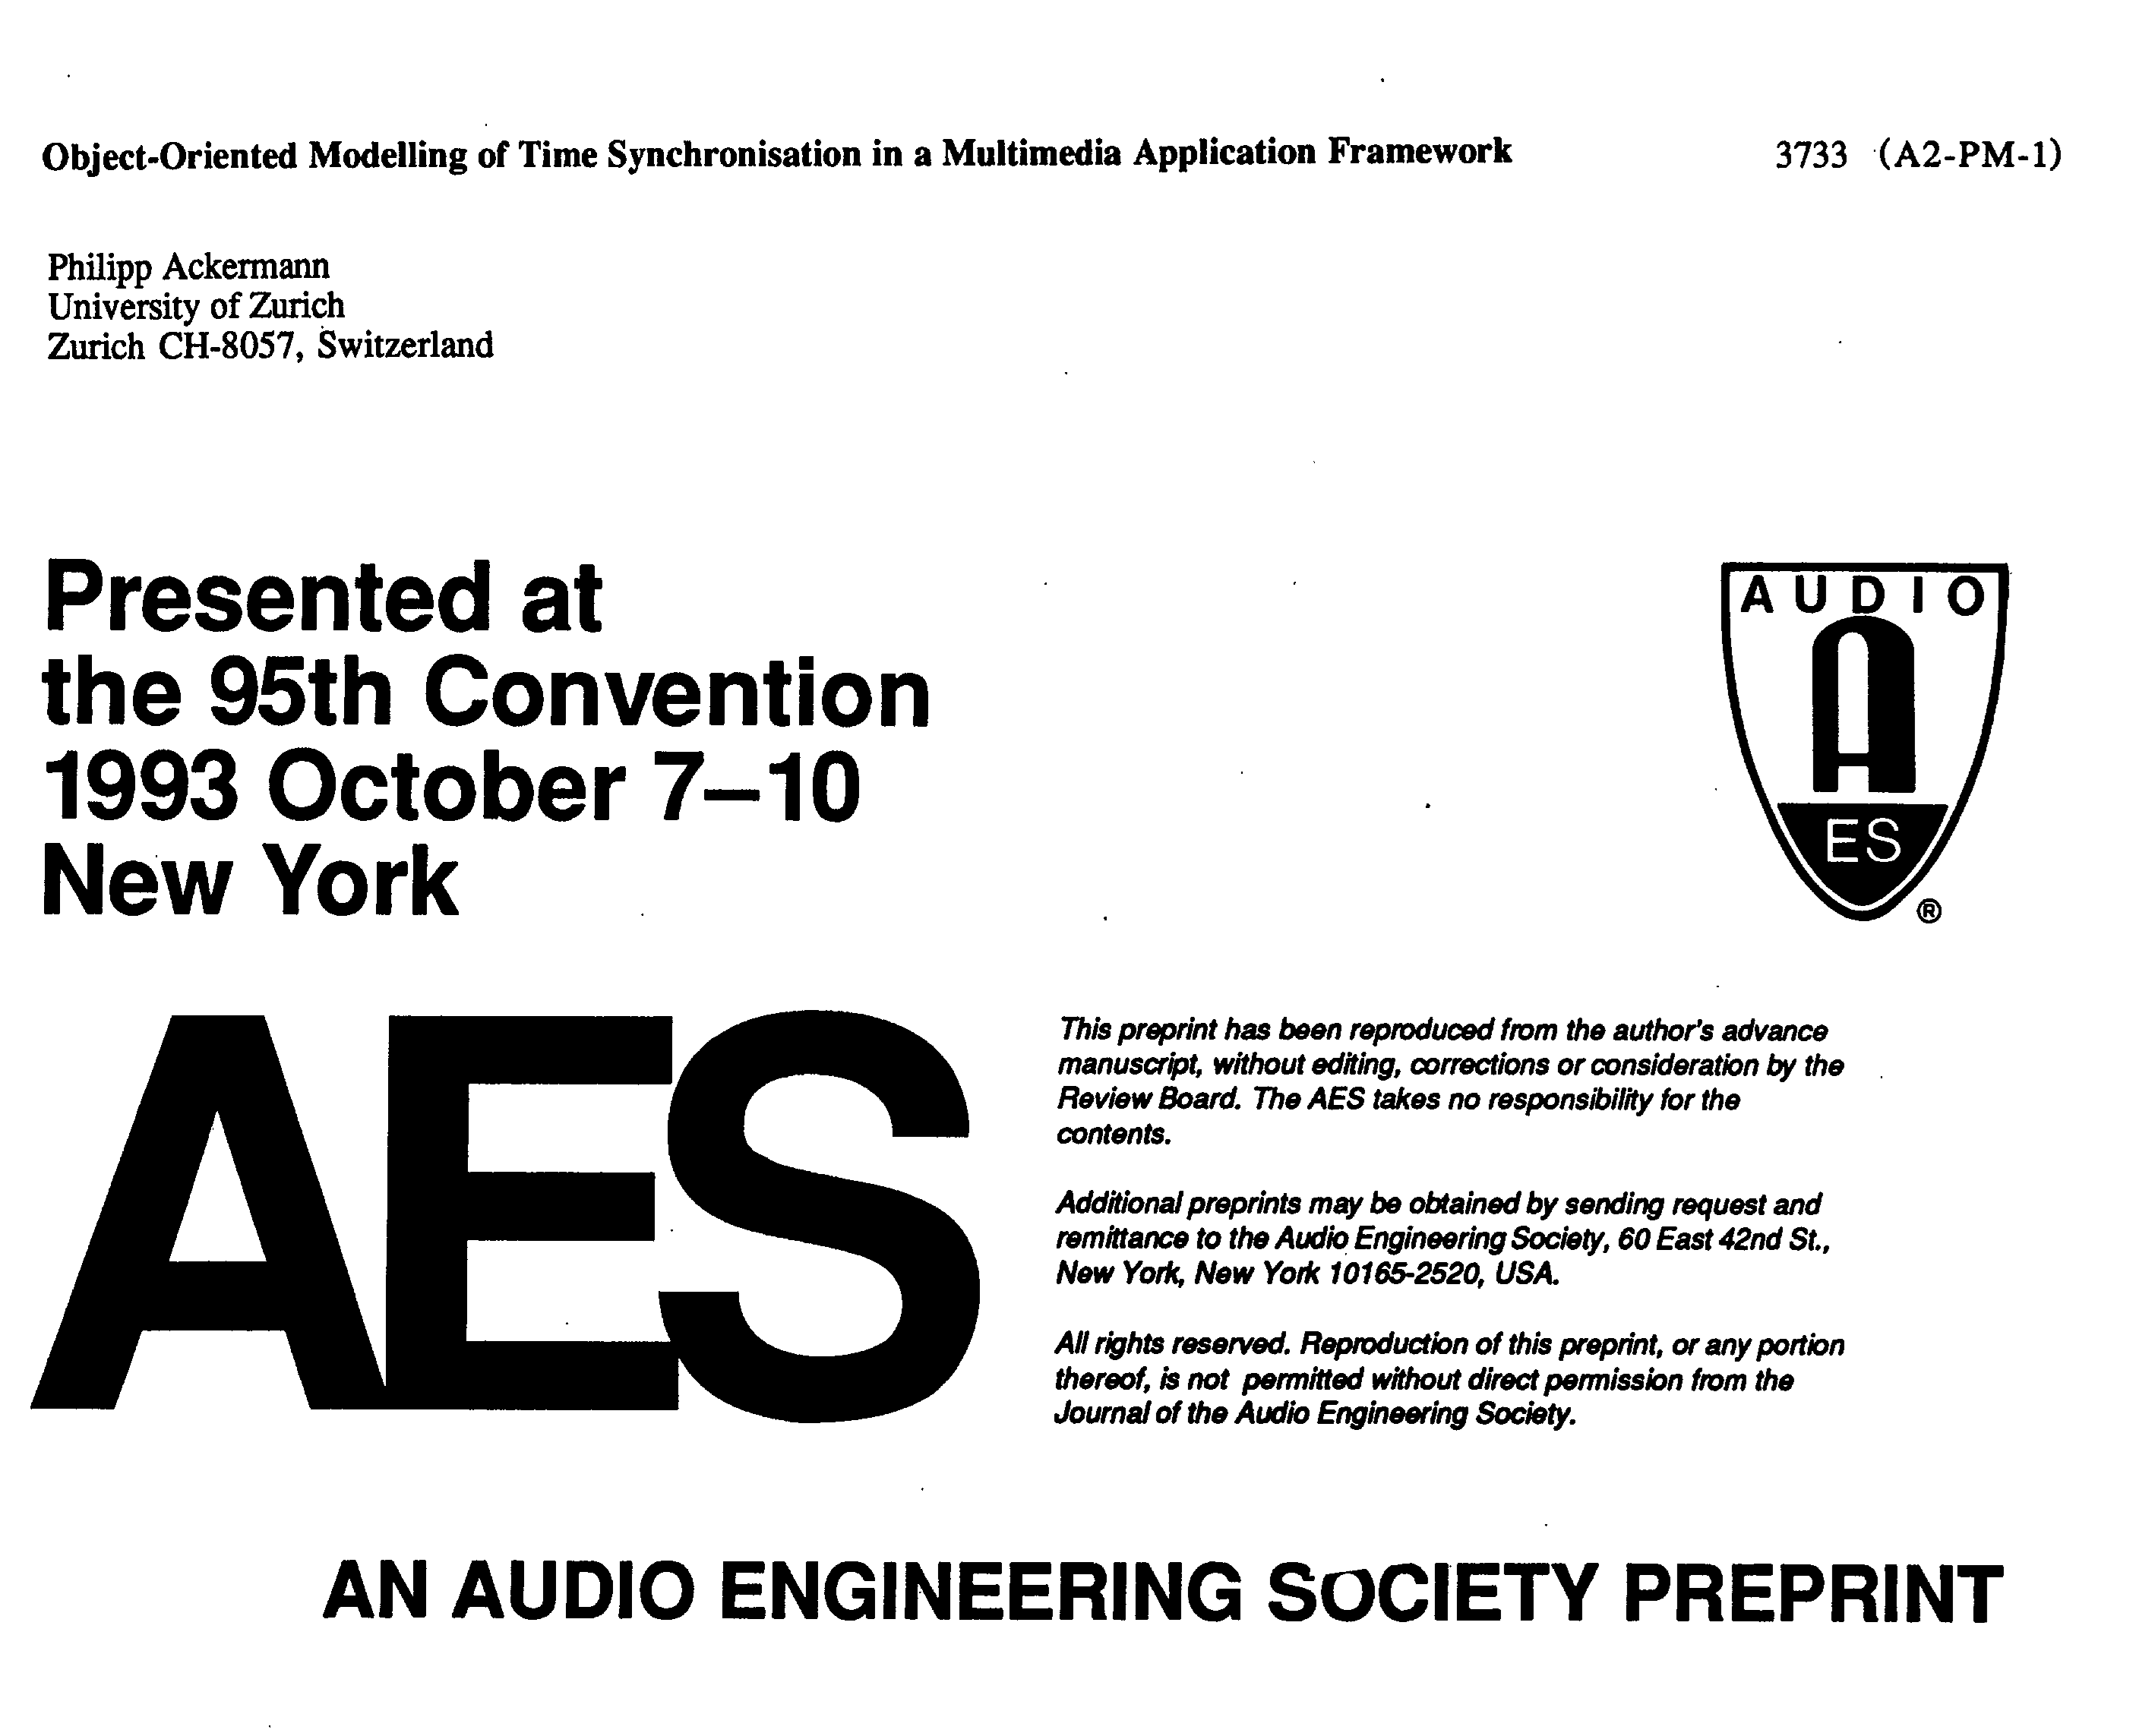 AES E-Library » Object-Oriented Modeling of Time Synchronization in ...